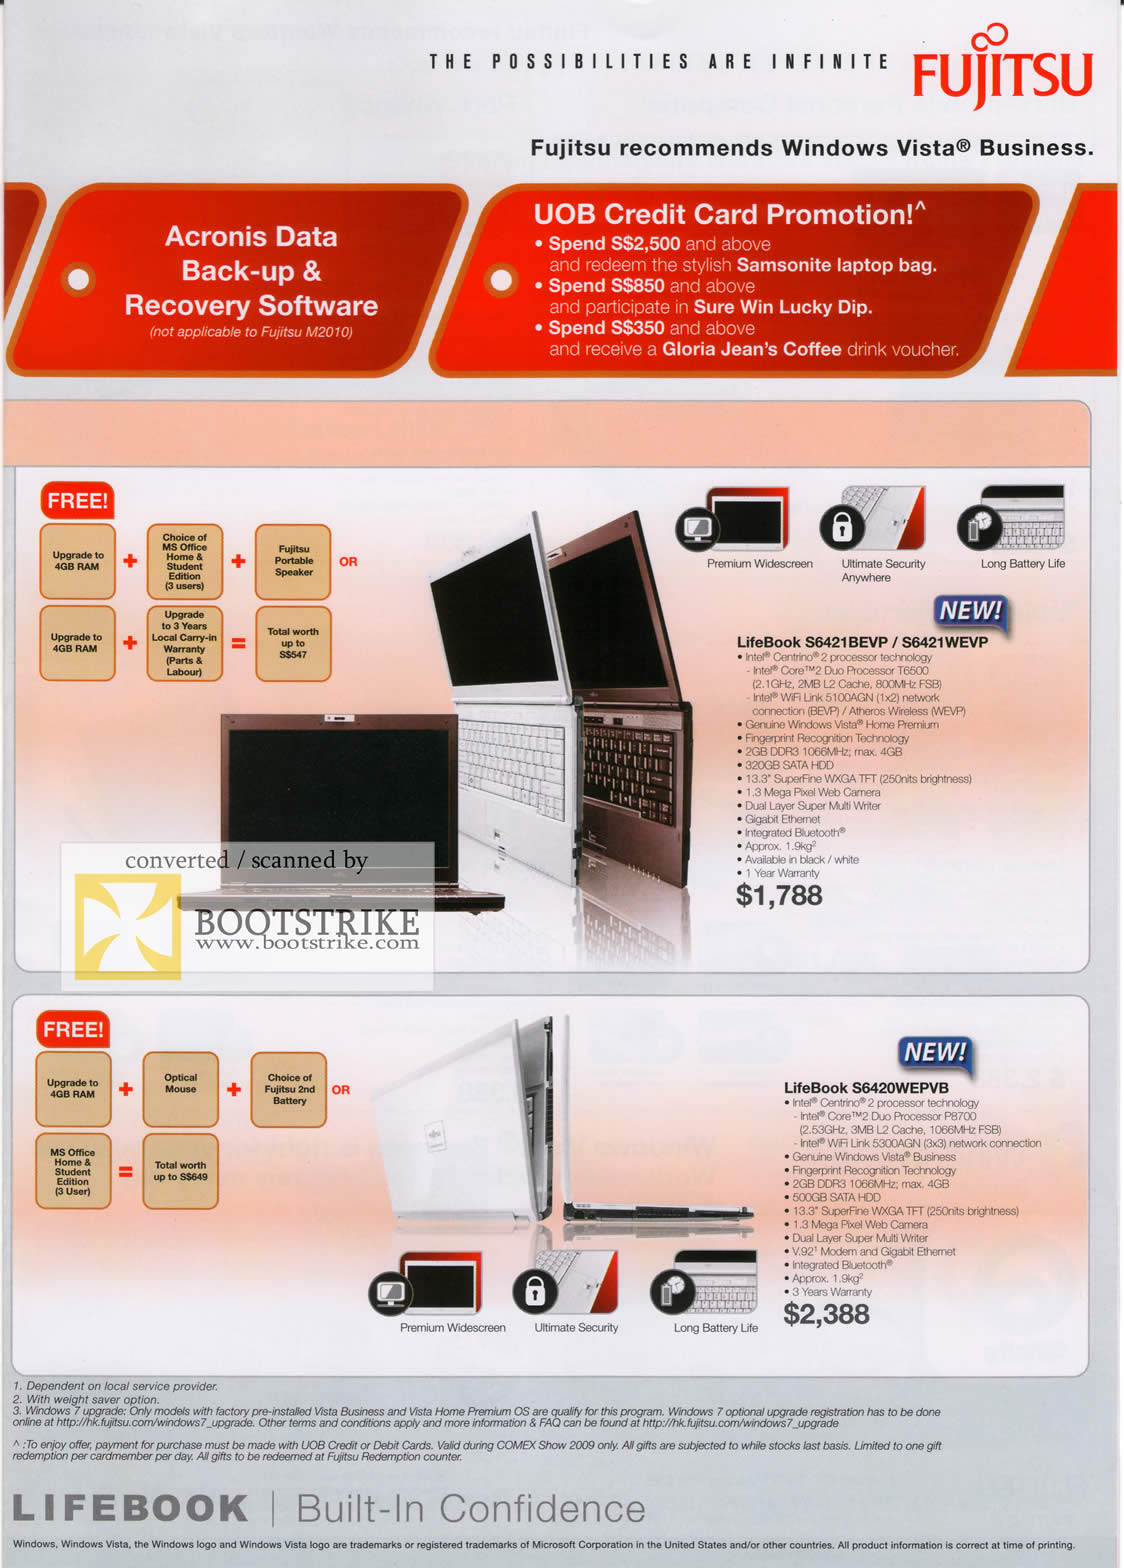 Comex 2009 price list image brochure of Fujitsu LifeBook Notebooks S6421BEVP S6421WEVP S6420WEBVB